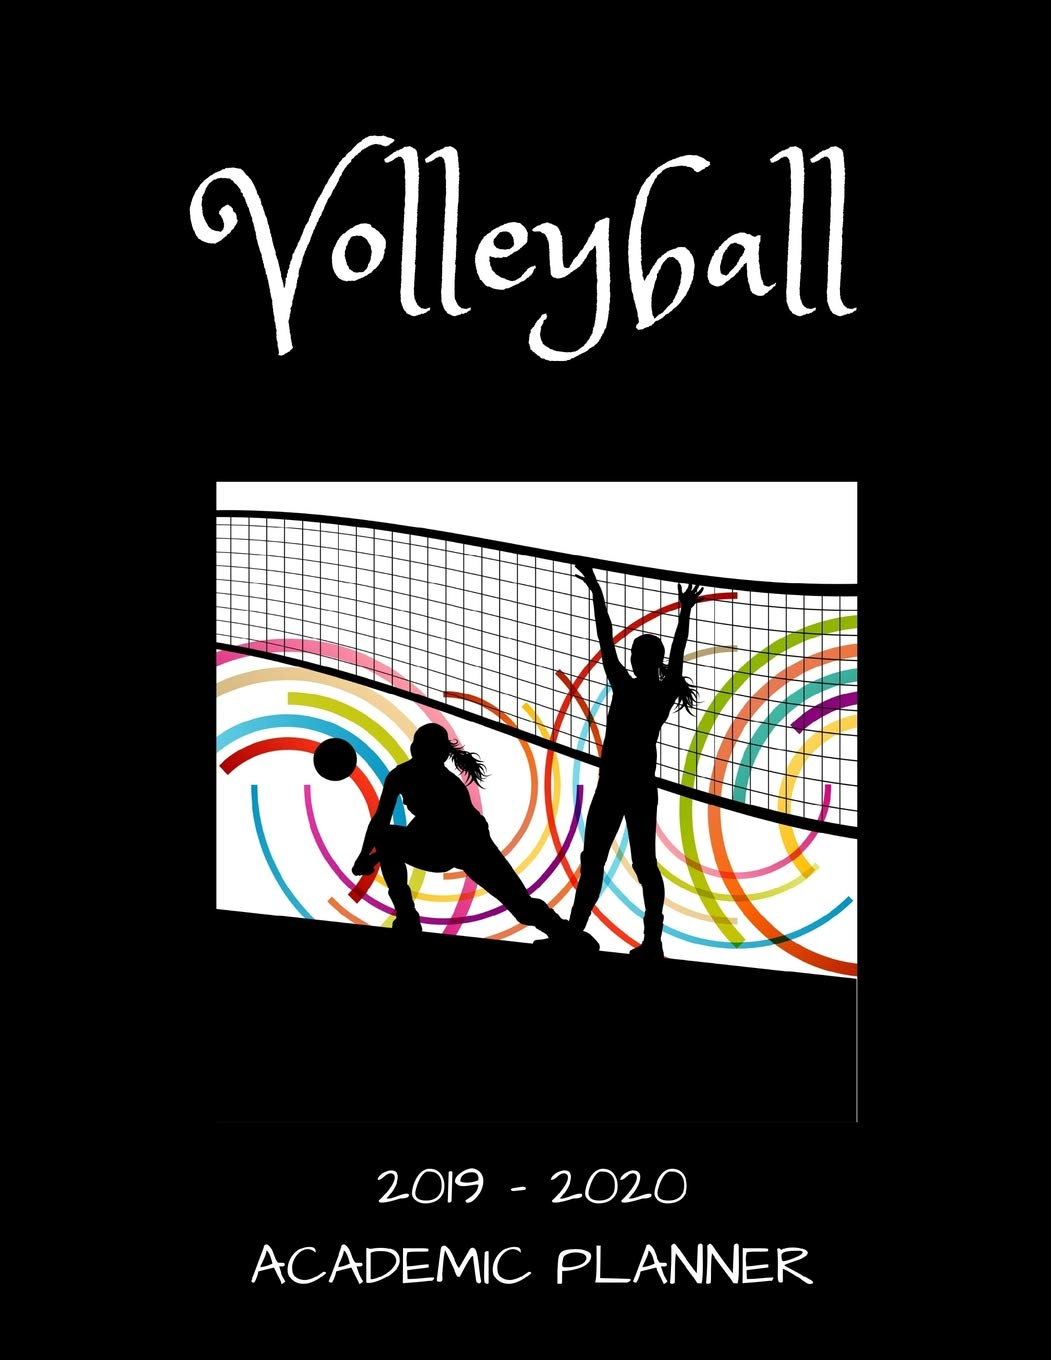 Volleyball Calendar 2020 Volleyball 2019   2020 Academic Planner: An 18 Month Weekly